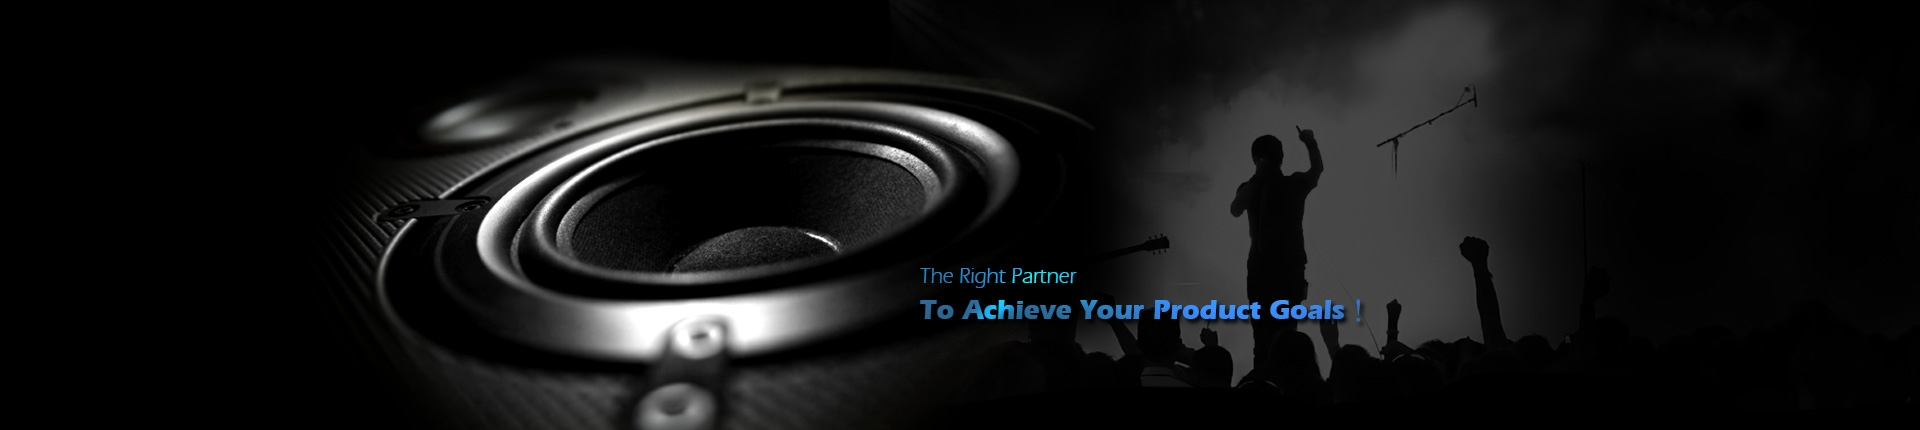 The right partner